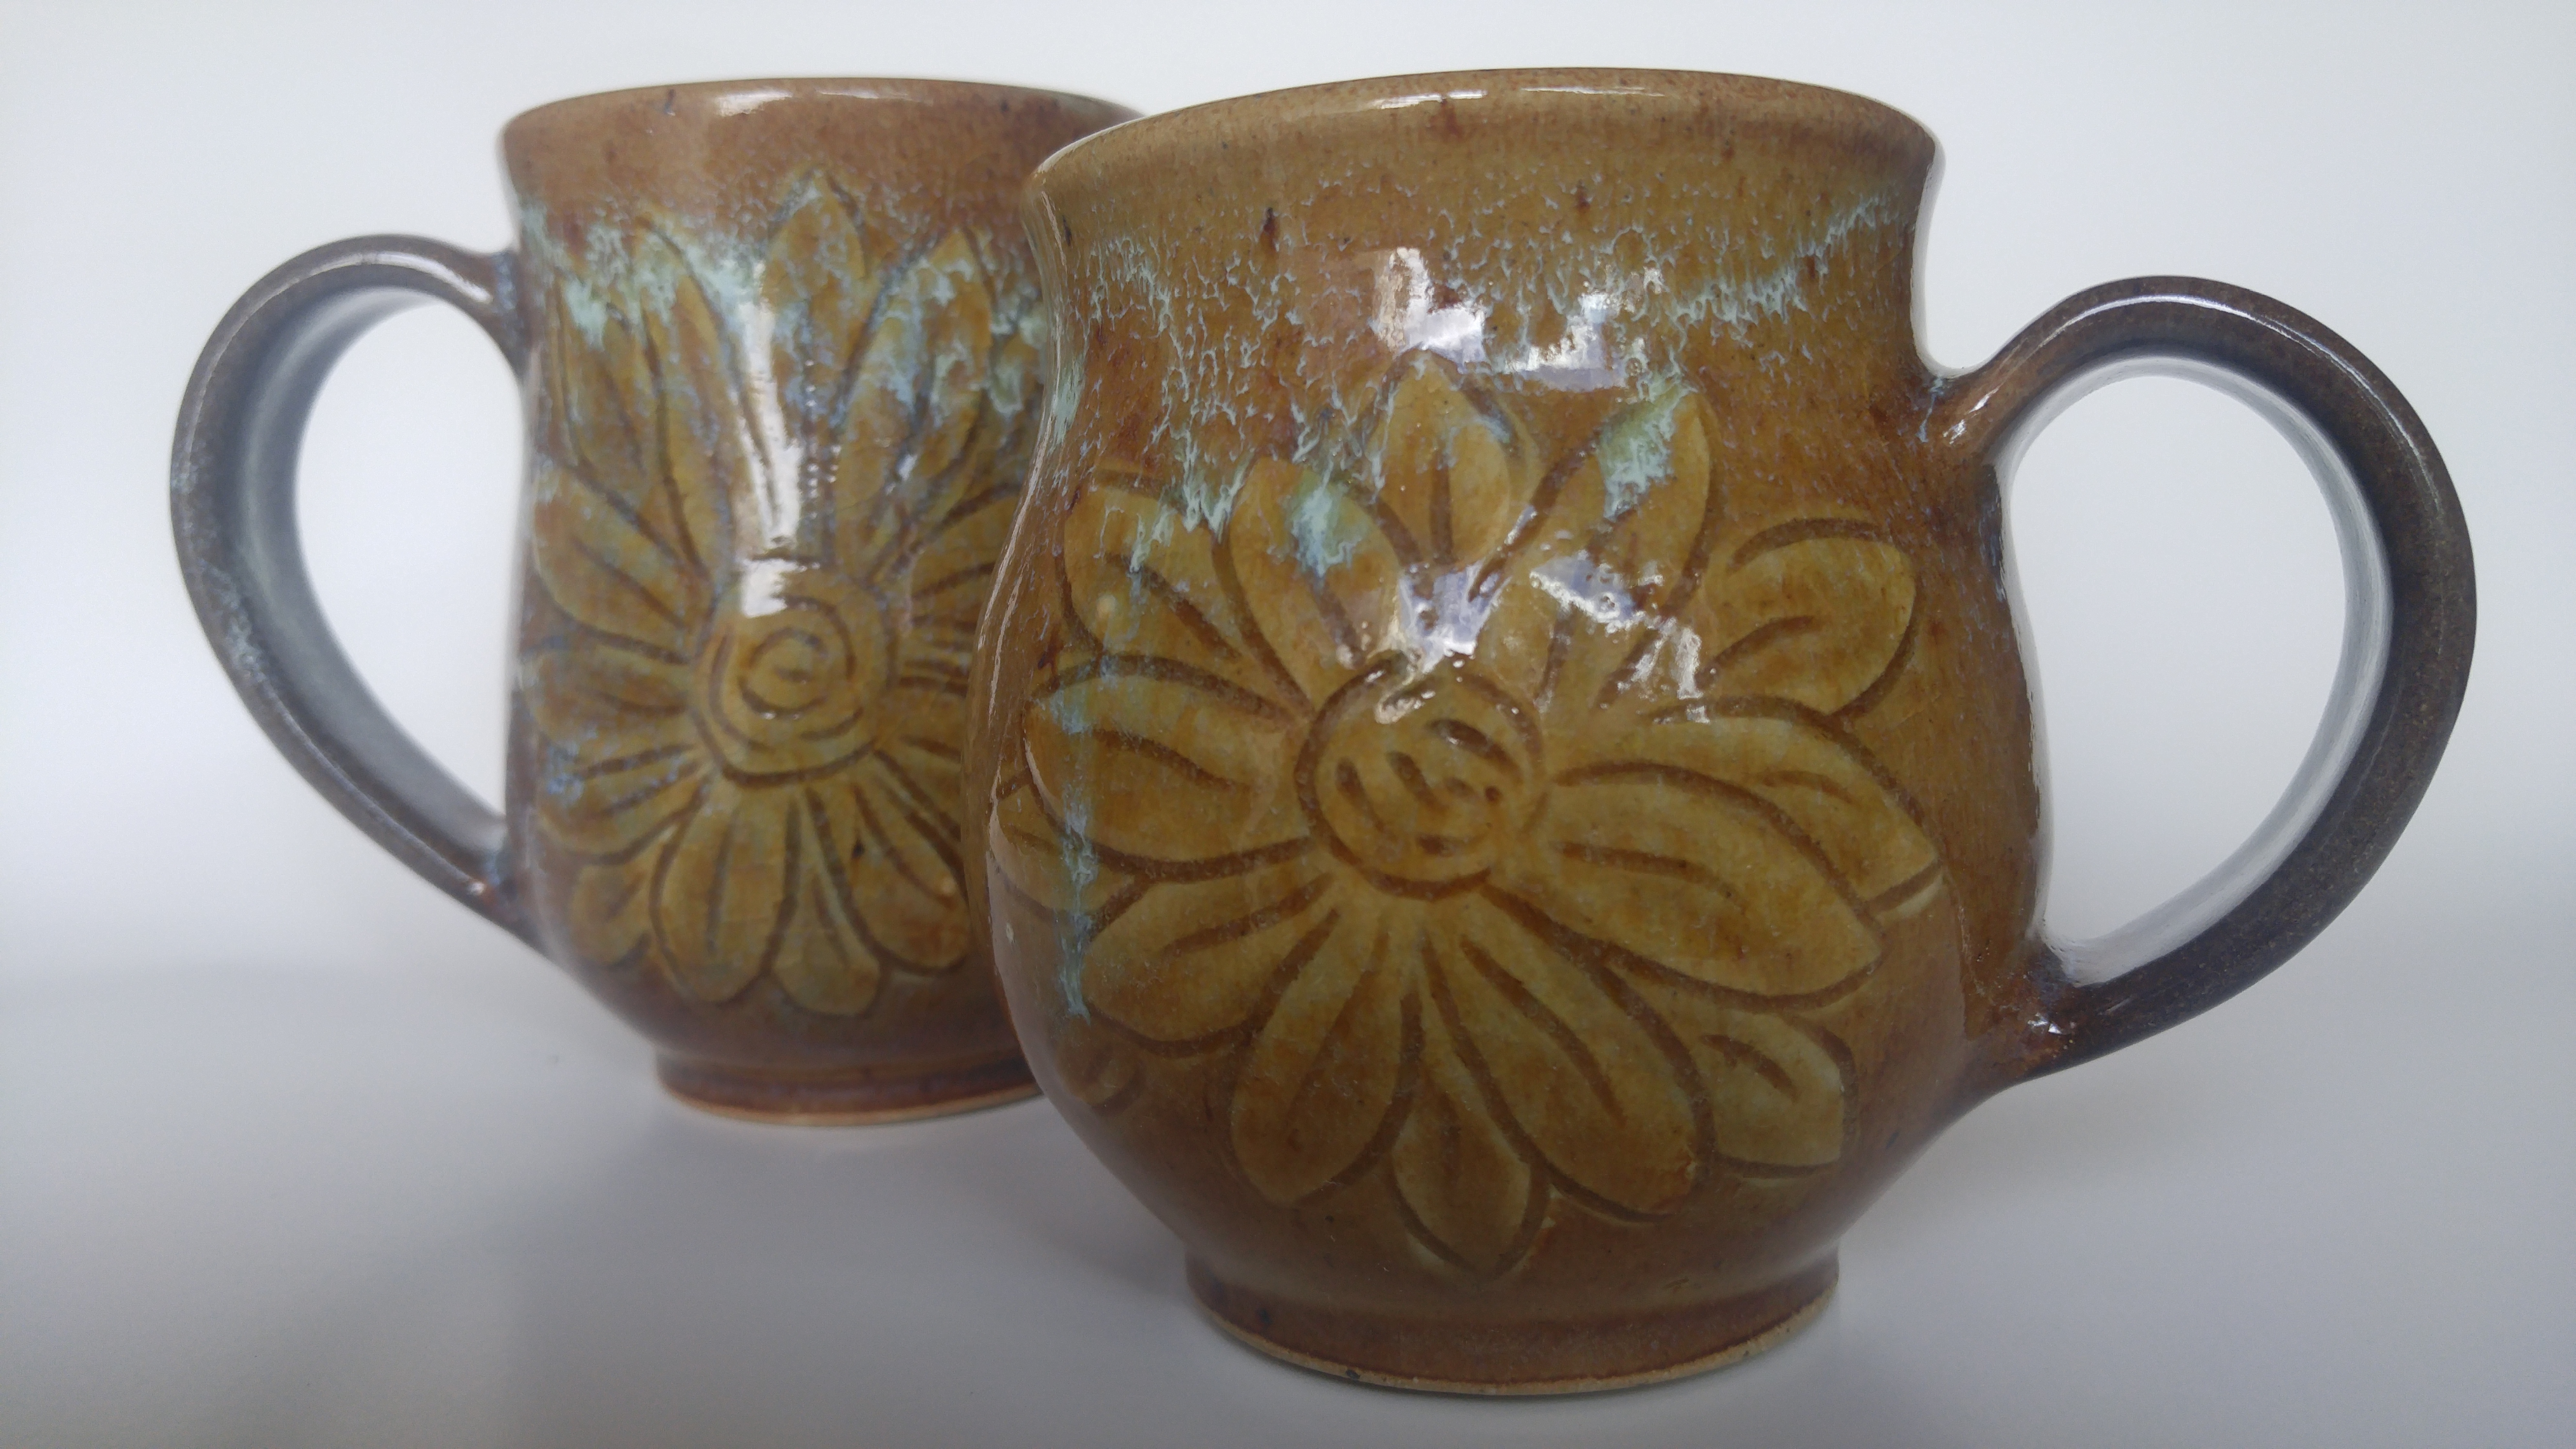 https://0901.nccdn.net/4_2/000/000/060/85f/Flower-Mugs-Small.png